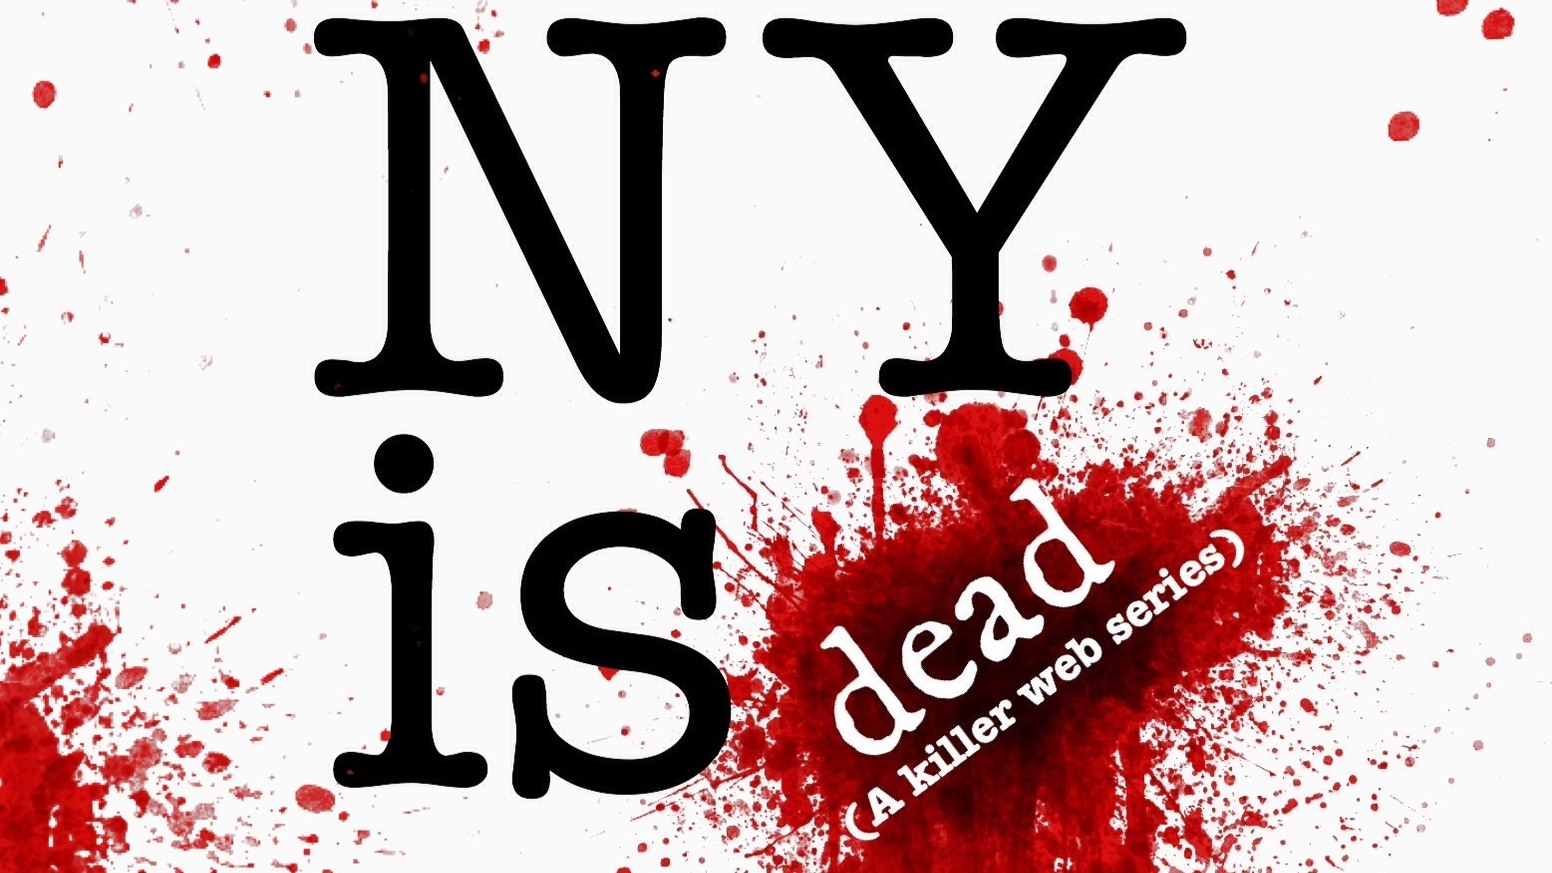 A darkly hilarious webseries about two broke New York City artists who become hired killers to make ends meet.